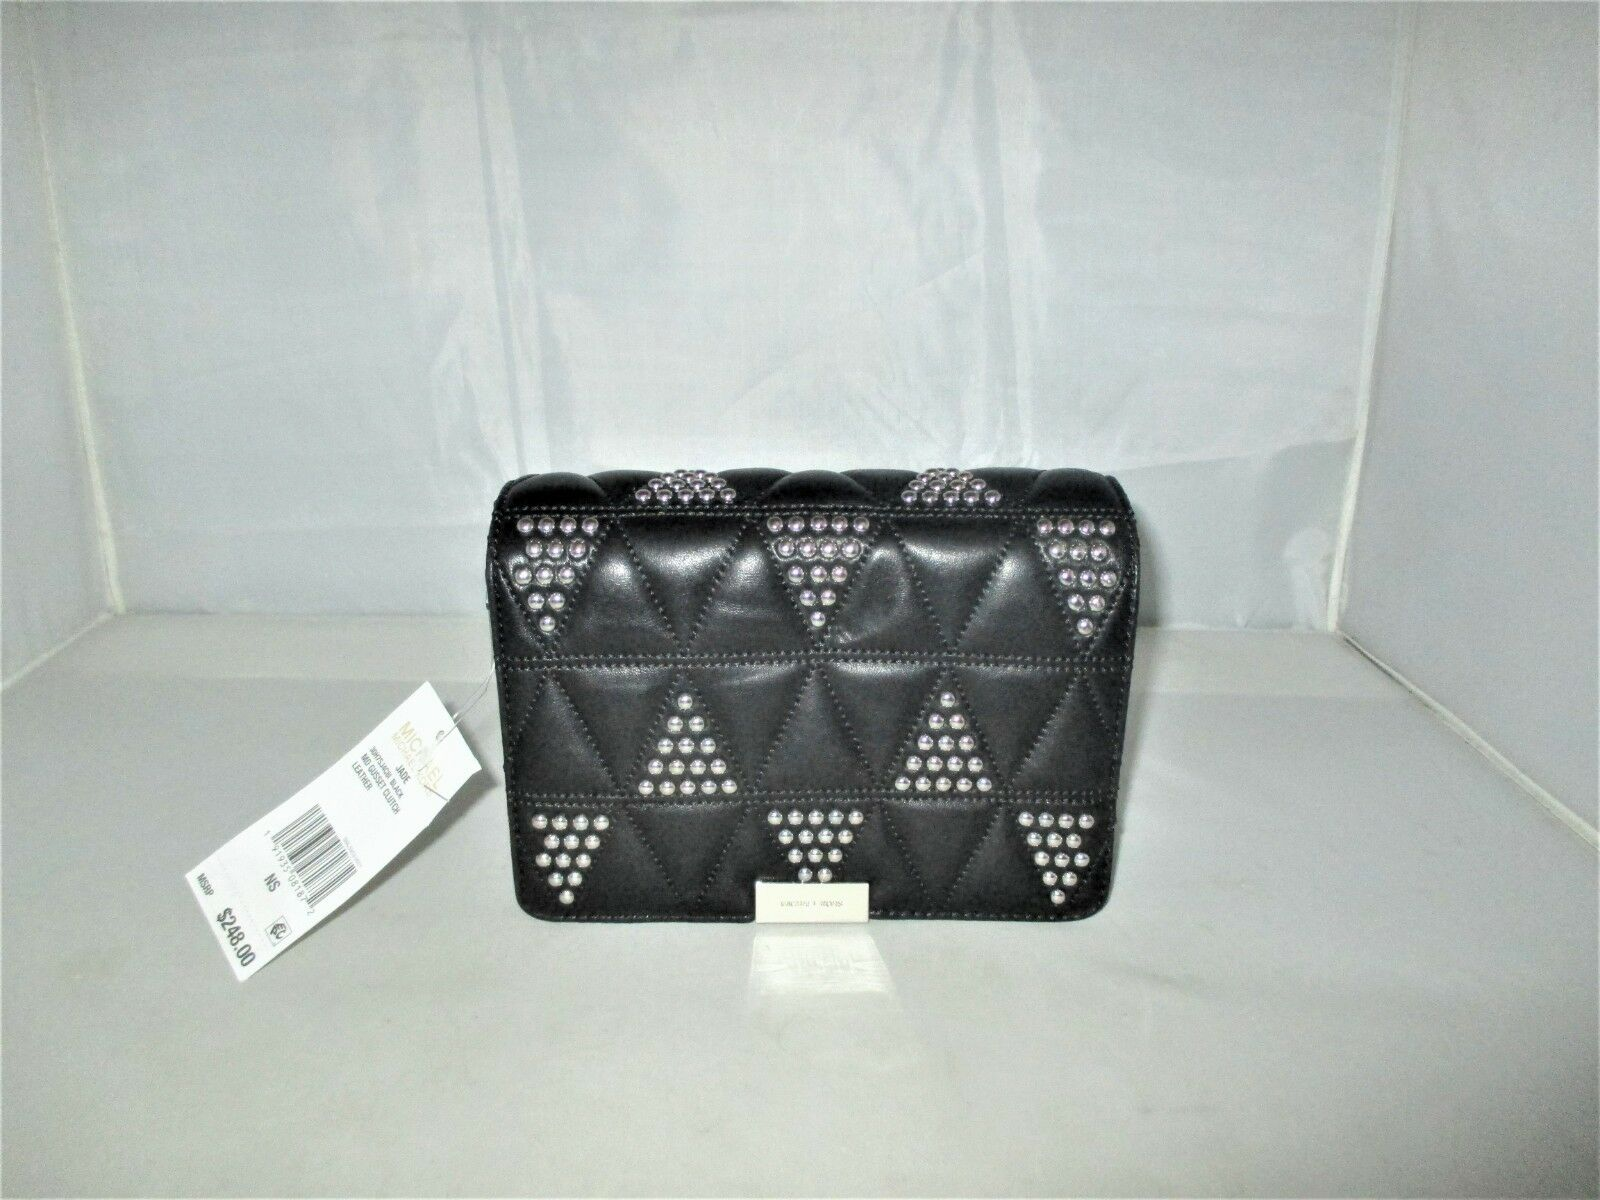 0dad3f311514 ... Black UPC 191935081872 product image for Michael Kors Jade Md Gusset  Quilted-leather Clutch, ...